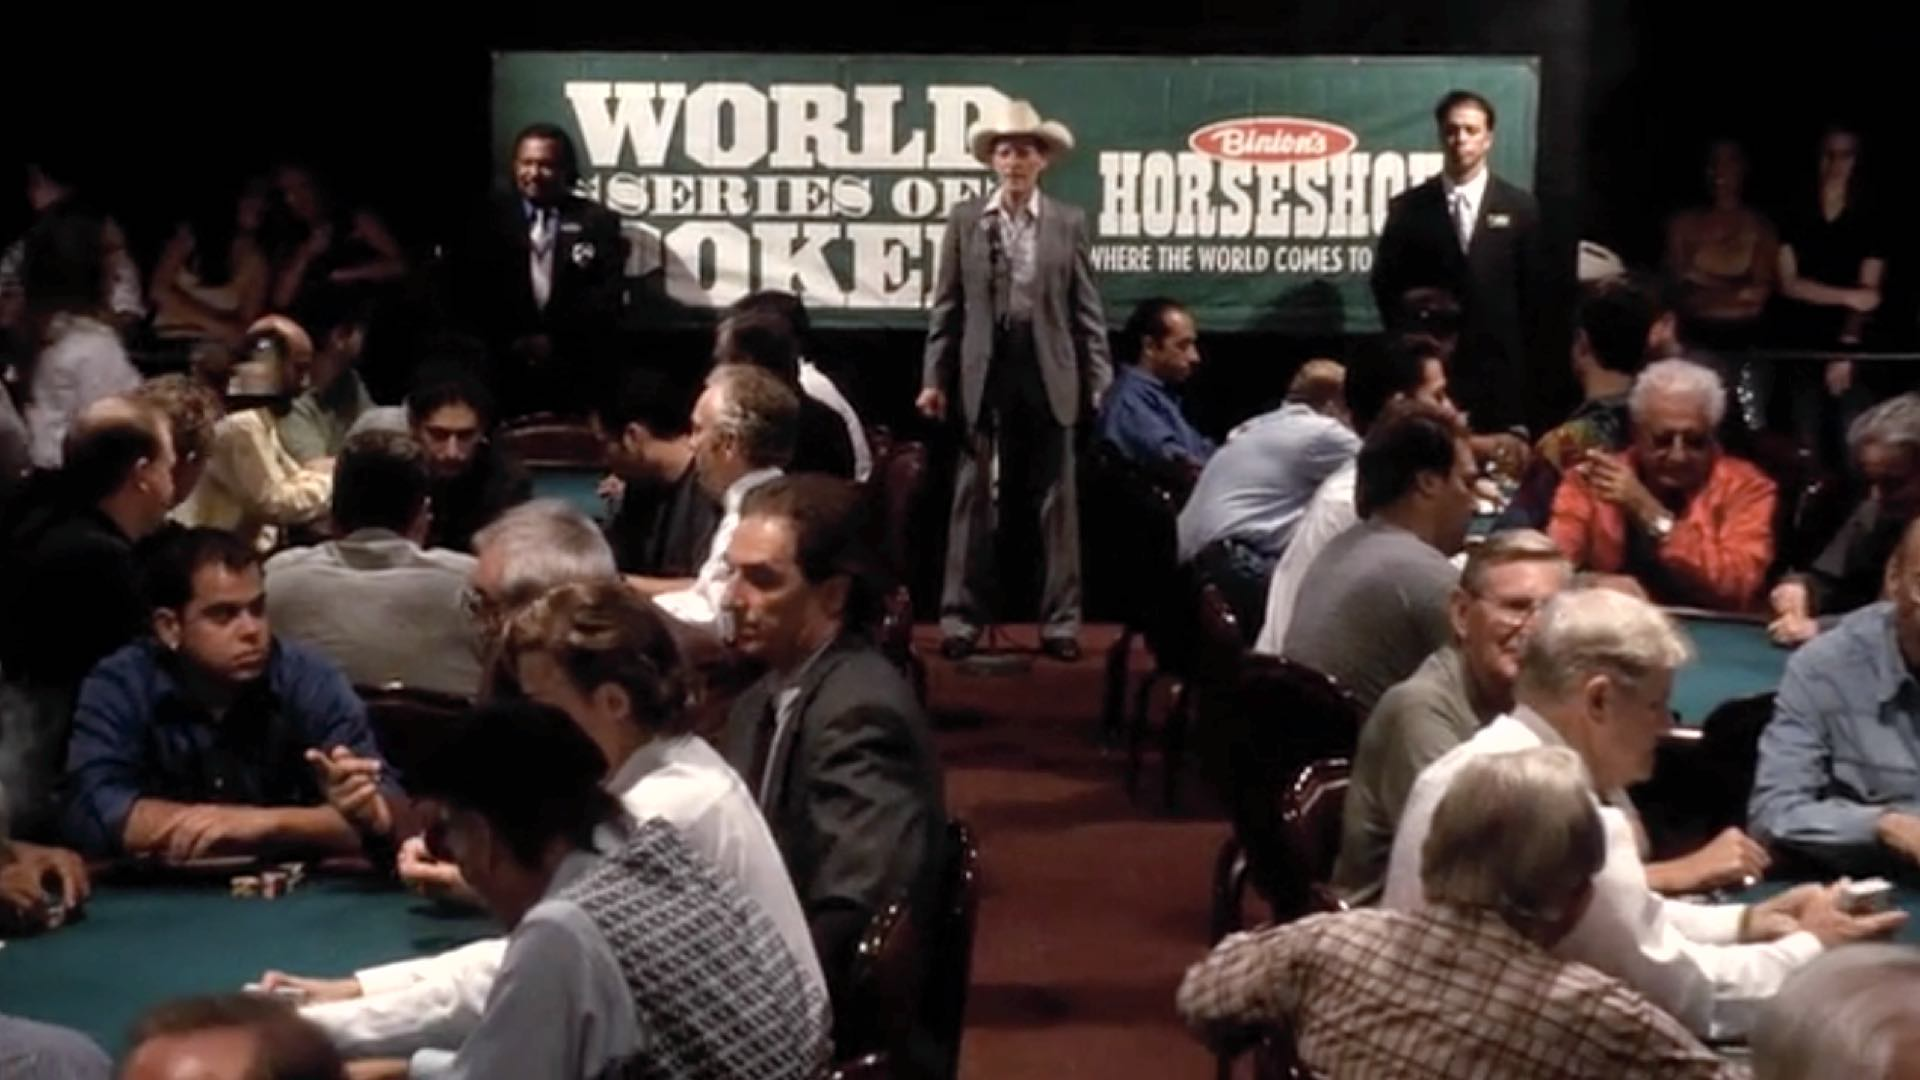 High Roller The Stu Ungar story